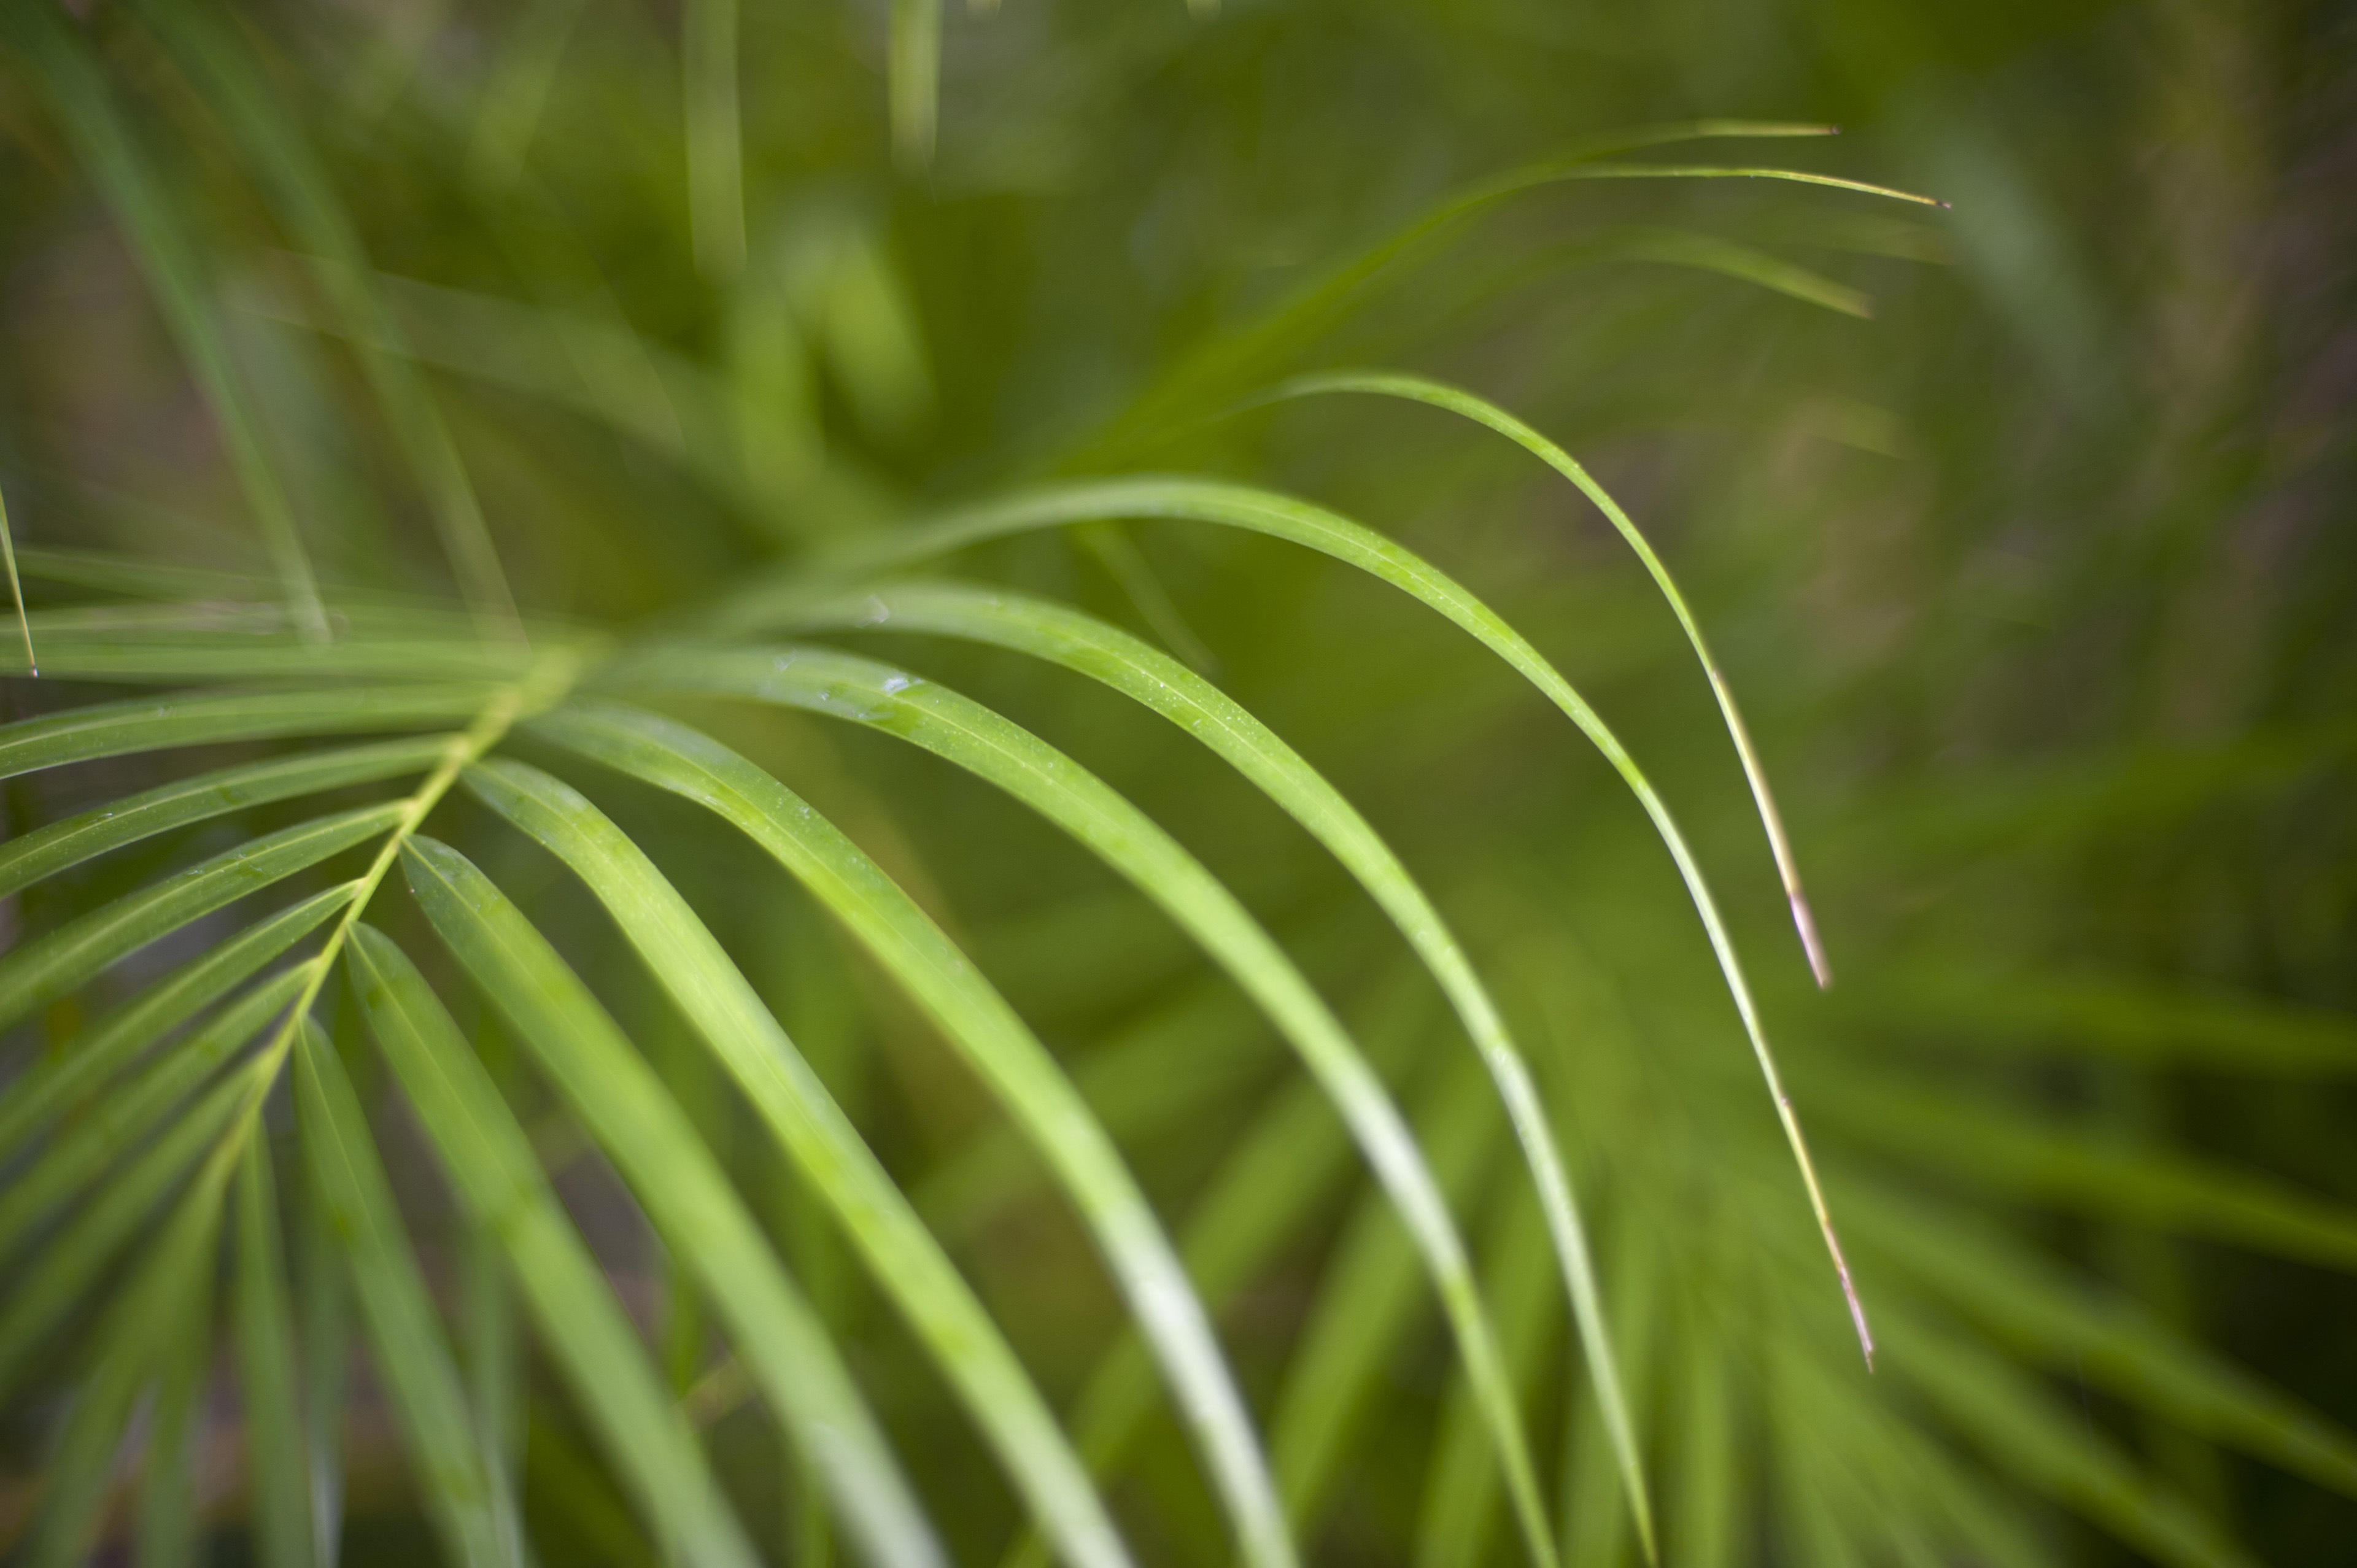 Nature Detail of Lush Green Tropical Fronds in Forest, Selective Focus on Fresh Plant Vegetation